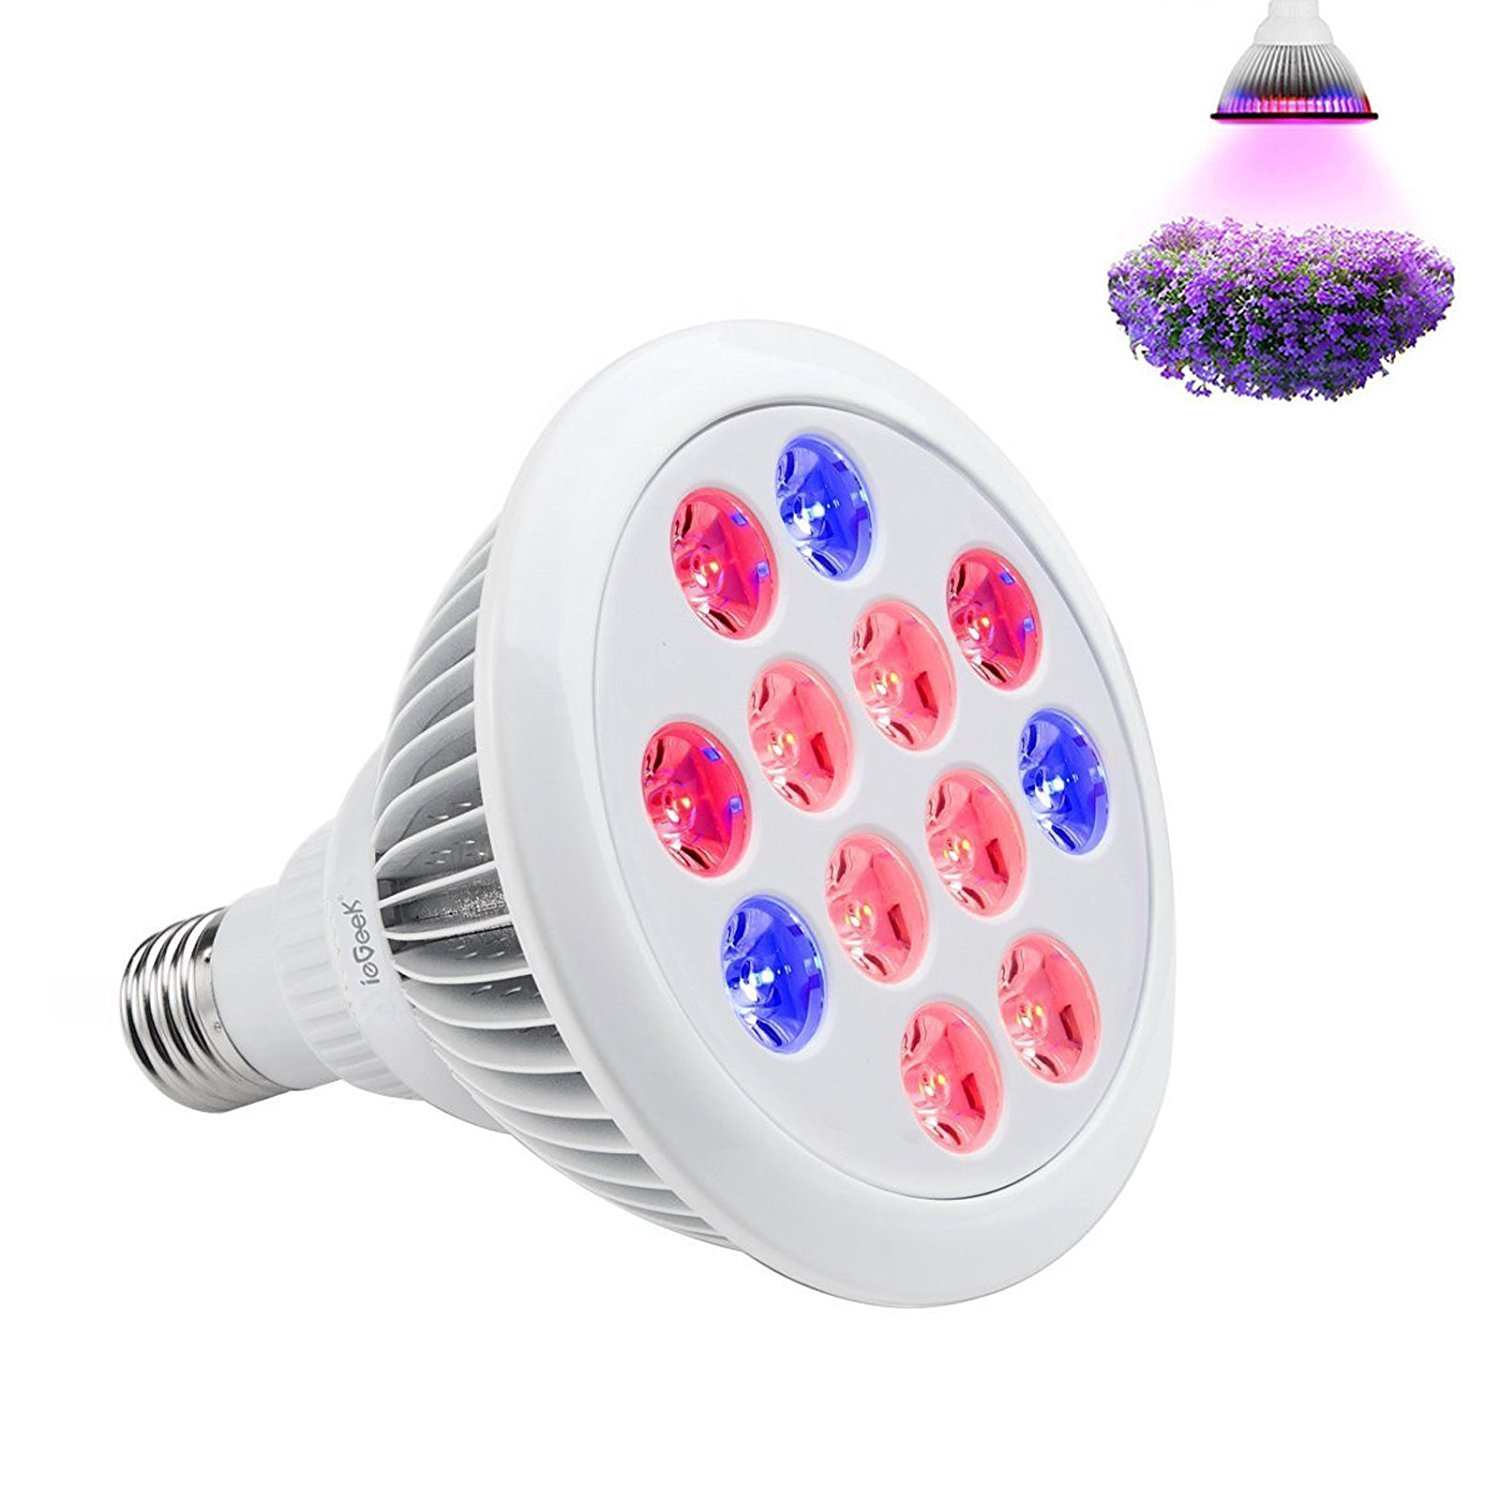 ieGeek 24W LED Plant Growing Light Lamp Bulb, Red Blue Spectrum High Efficient for indoor Plants Hydroponic System Greenhouse Grow Tent (E27 Screw)